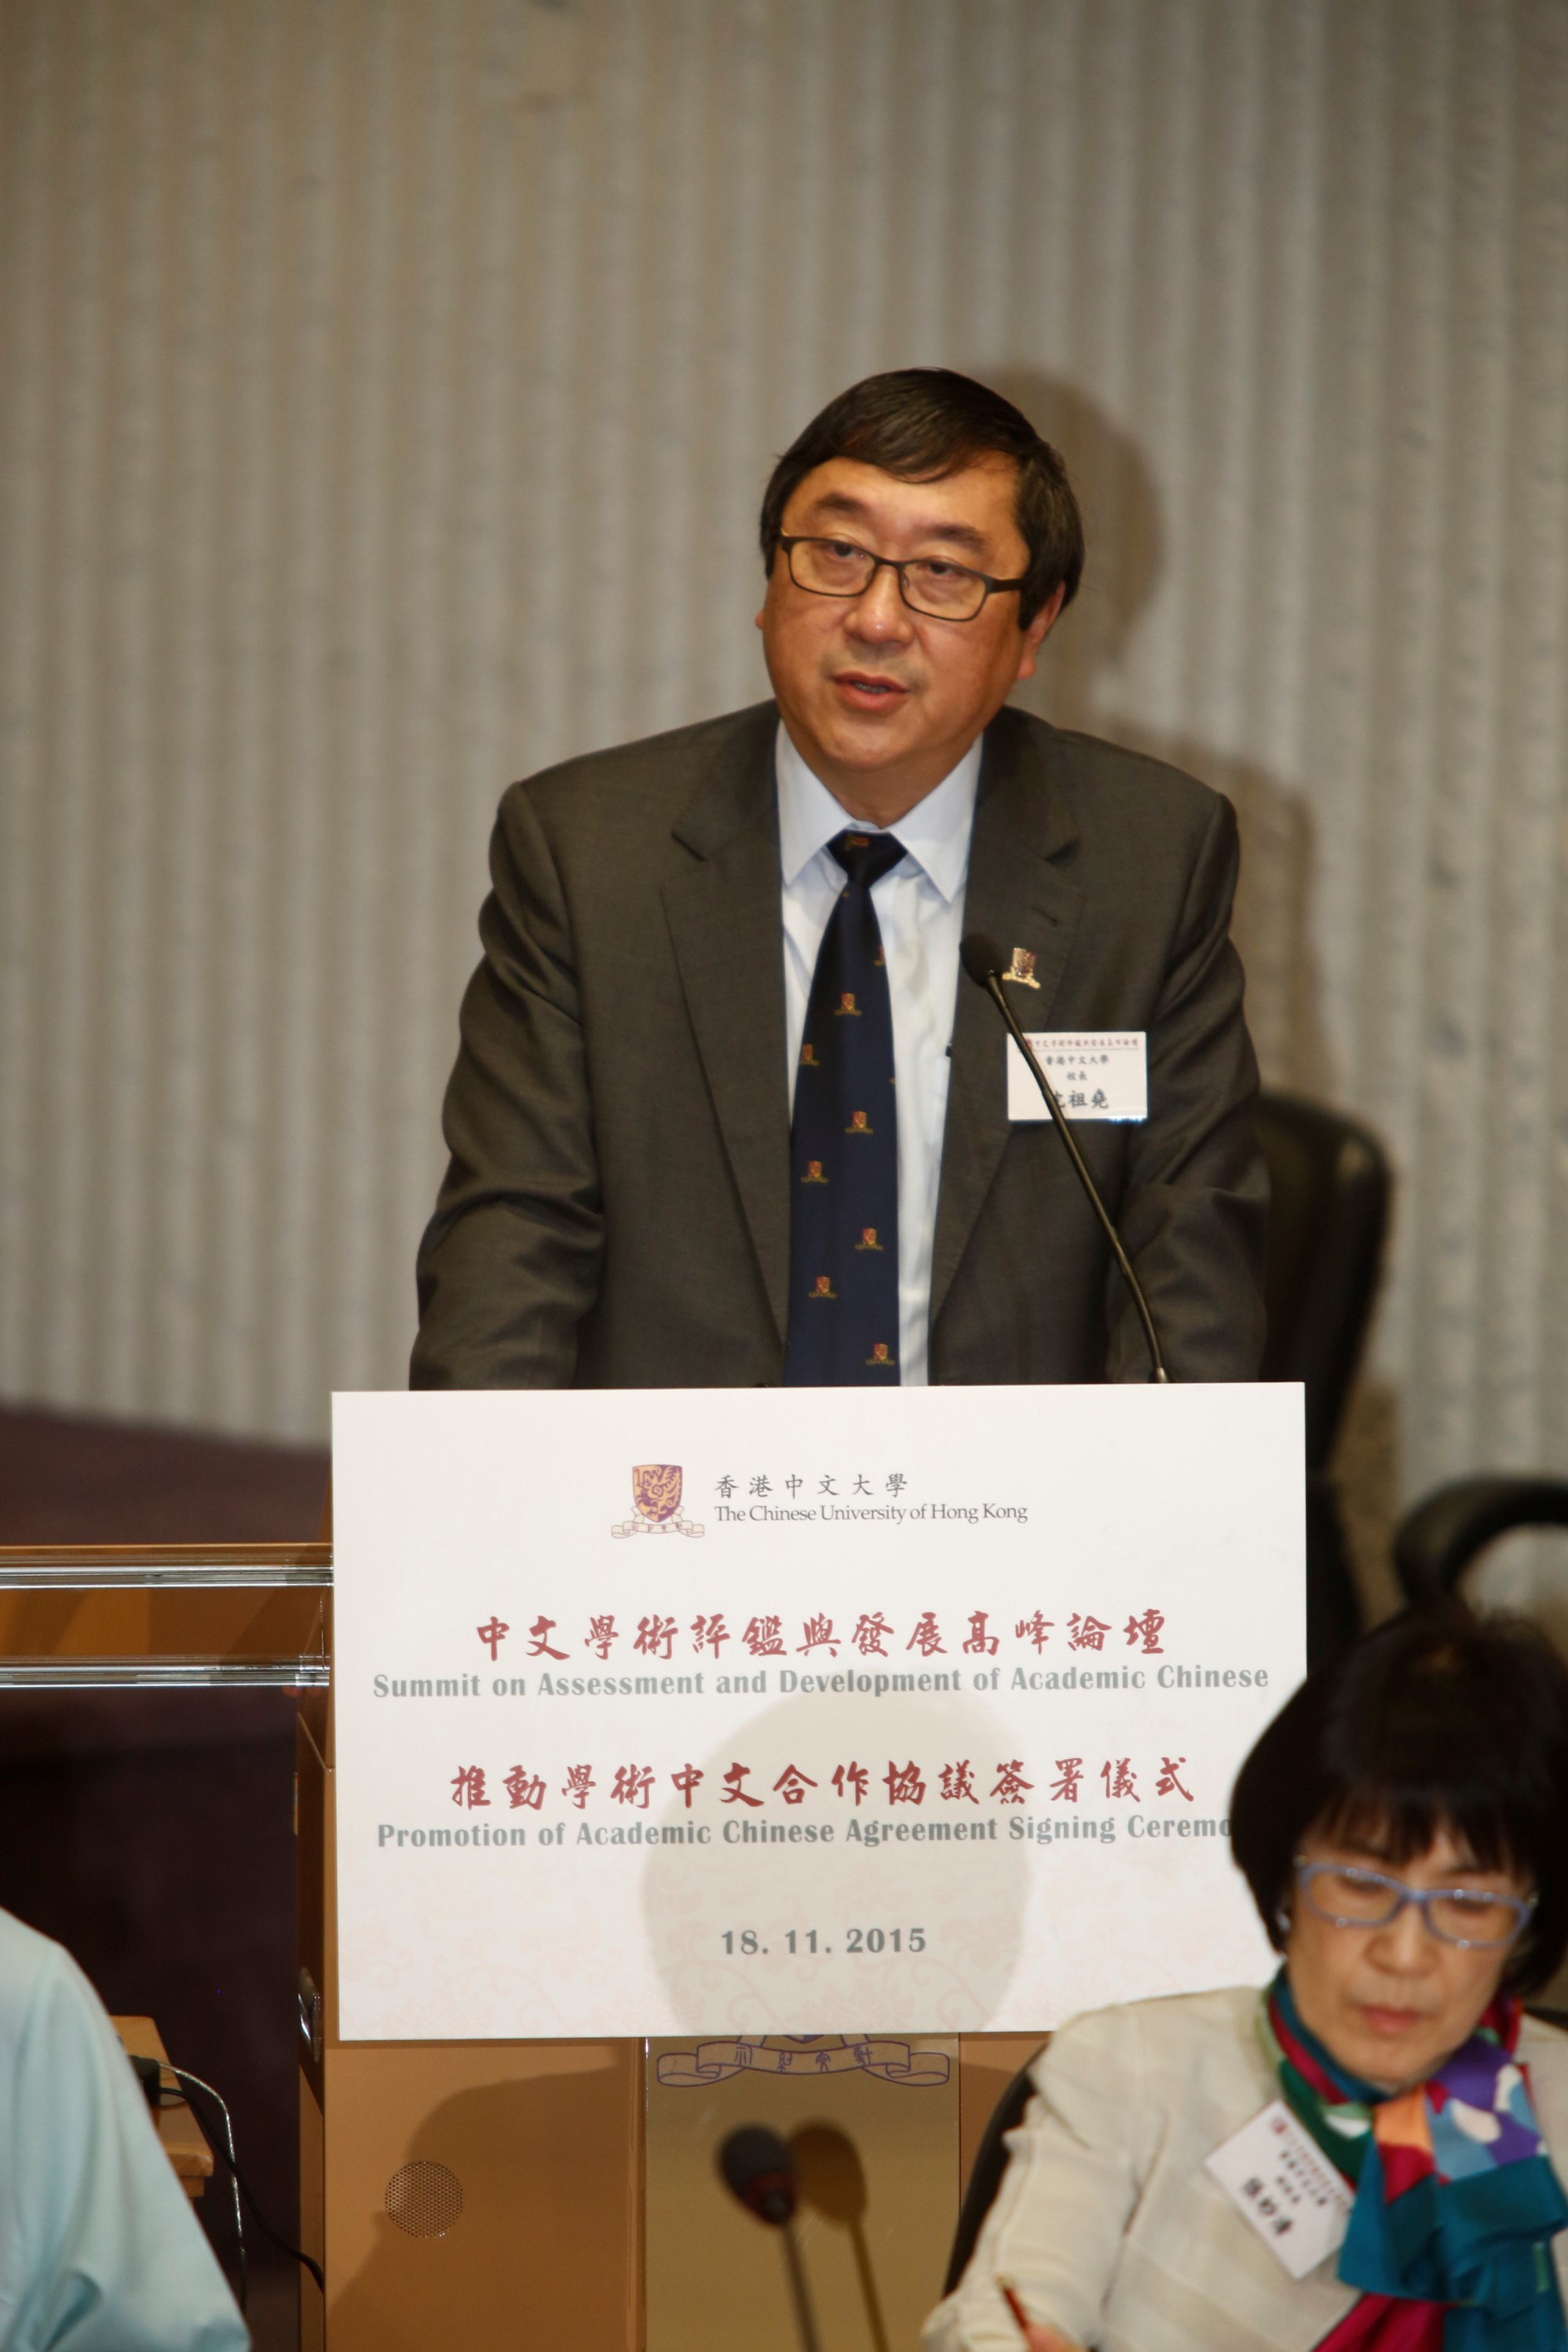 Prof. Joseph J.Y. Sung, Vice-Chancellor of CUHK, one of the initiating universities, delivers a speech.